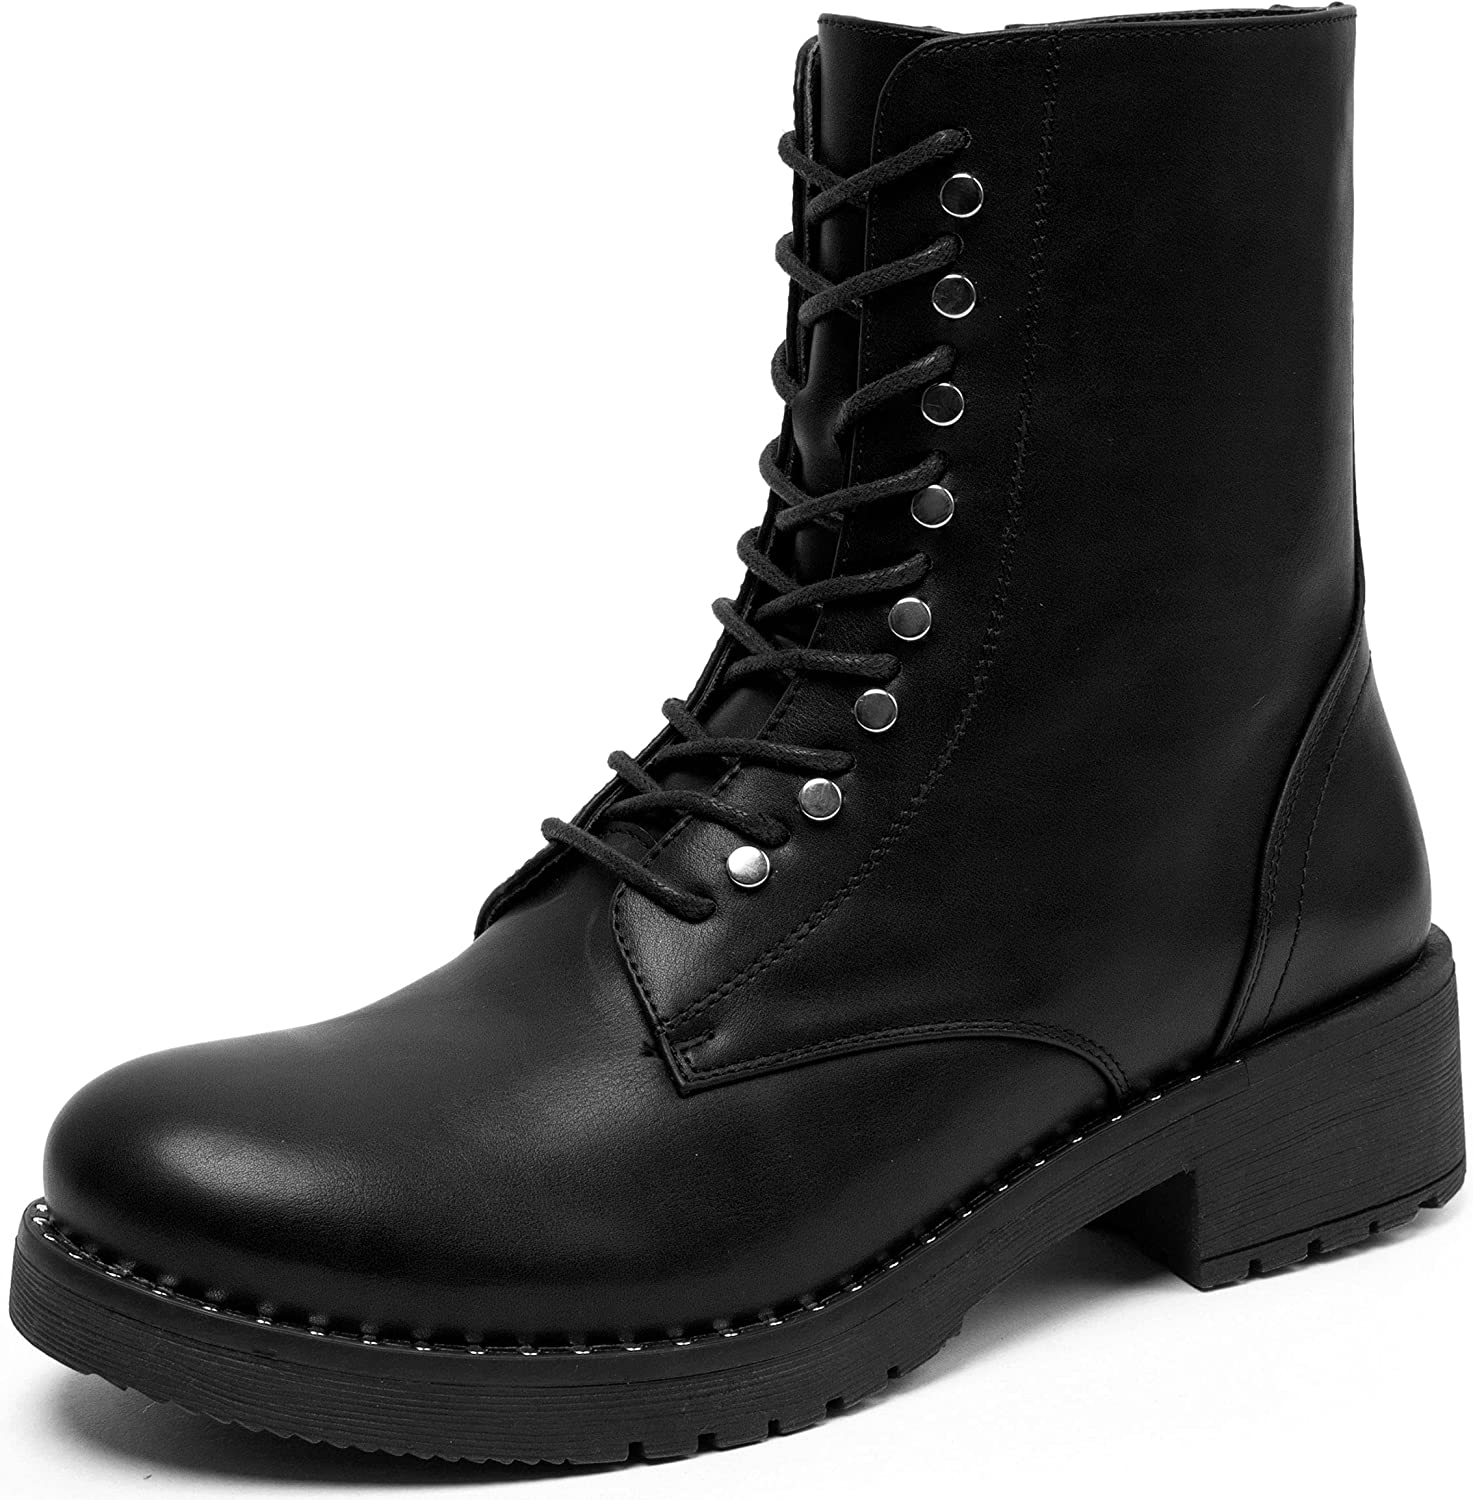 katliu Women's Military Combat Boots Up Lace Popular products Ranking TOP3 Ankle